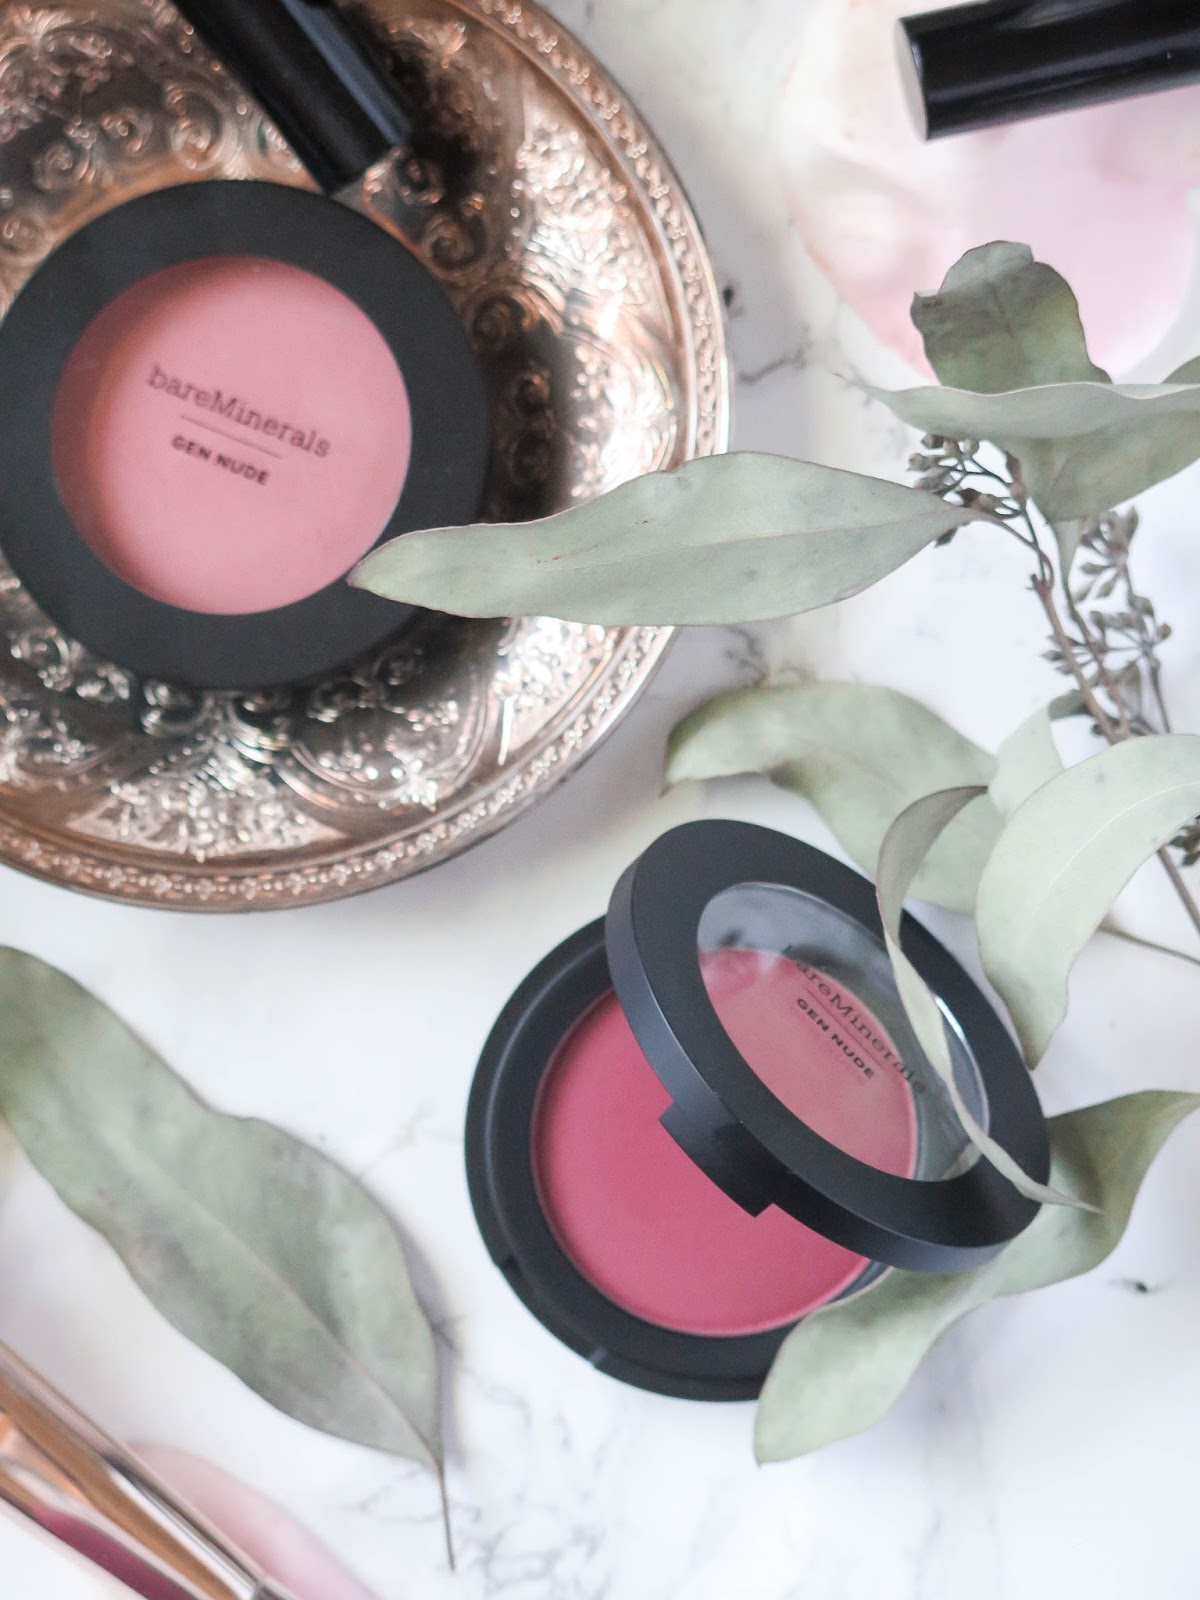 Naturally Nude | BareMinerals GenNude Powder Blushes & Patent Lip Lacquers | Review & Swatches | labellesirene_